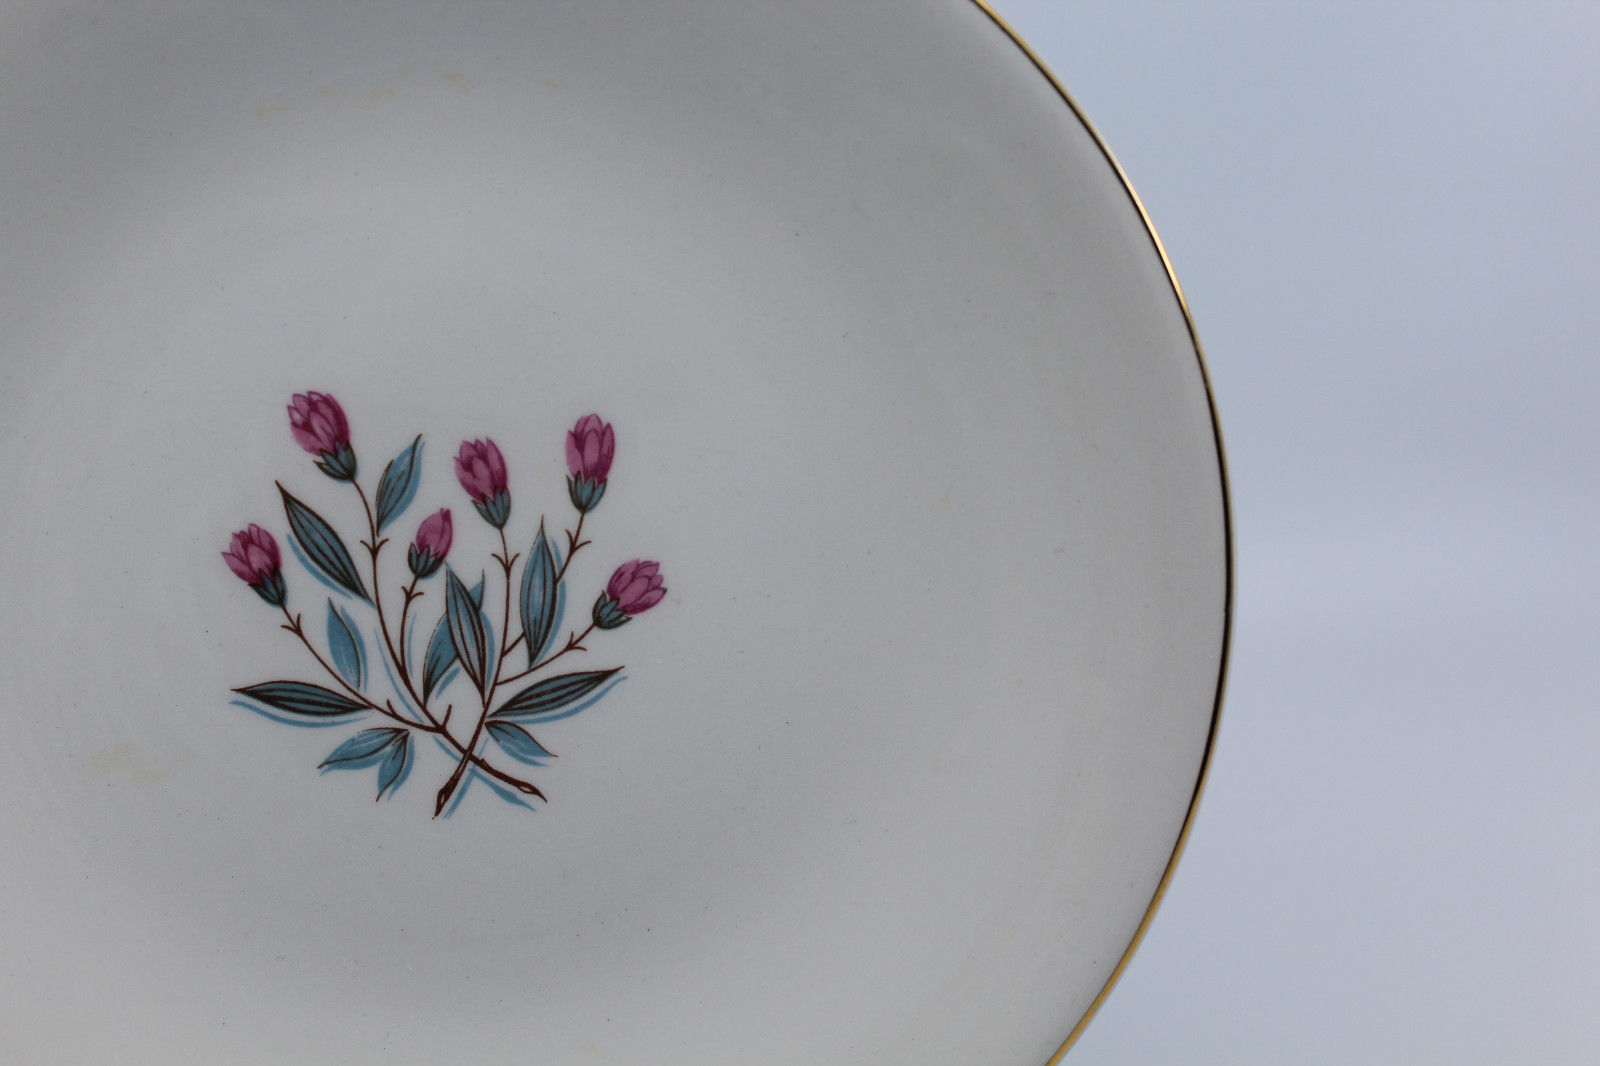 Enoch wedgwood tunstall ltd Bread and Butter Side Plate Pink Flower 17.5 cm image 6